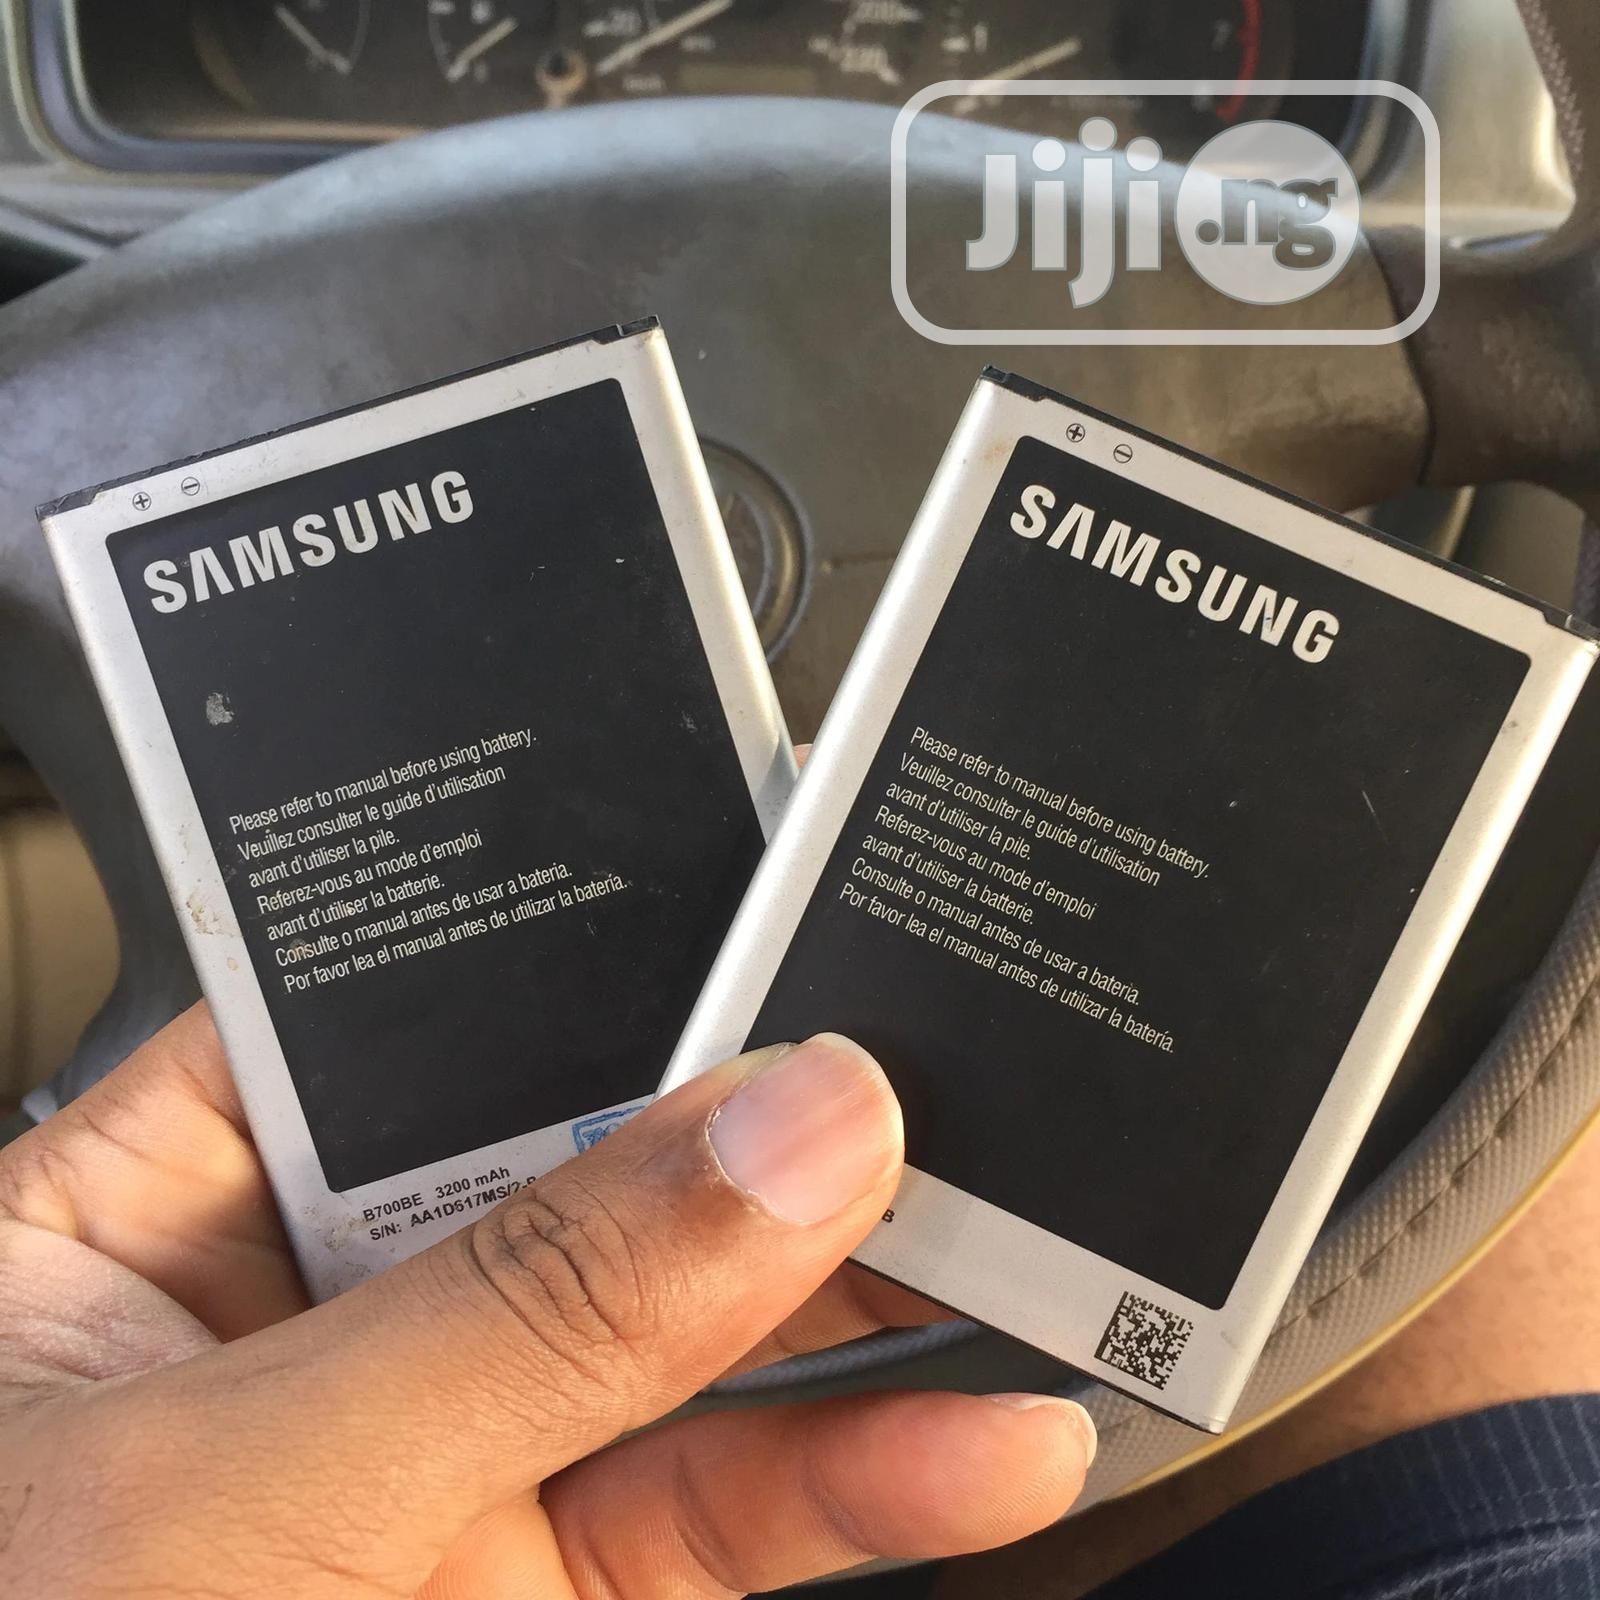 Samsung Galaxy Mega 2 16 GB | Mobile Phones for sale in Central Business Dis, Abuja (FCT) State, Nigeria